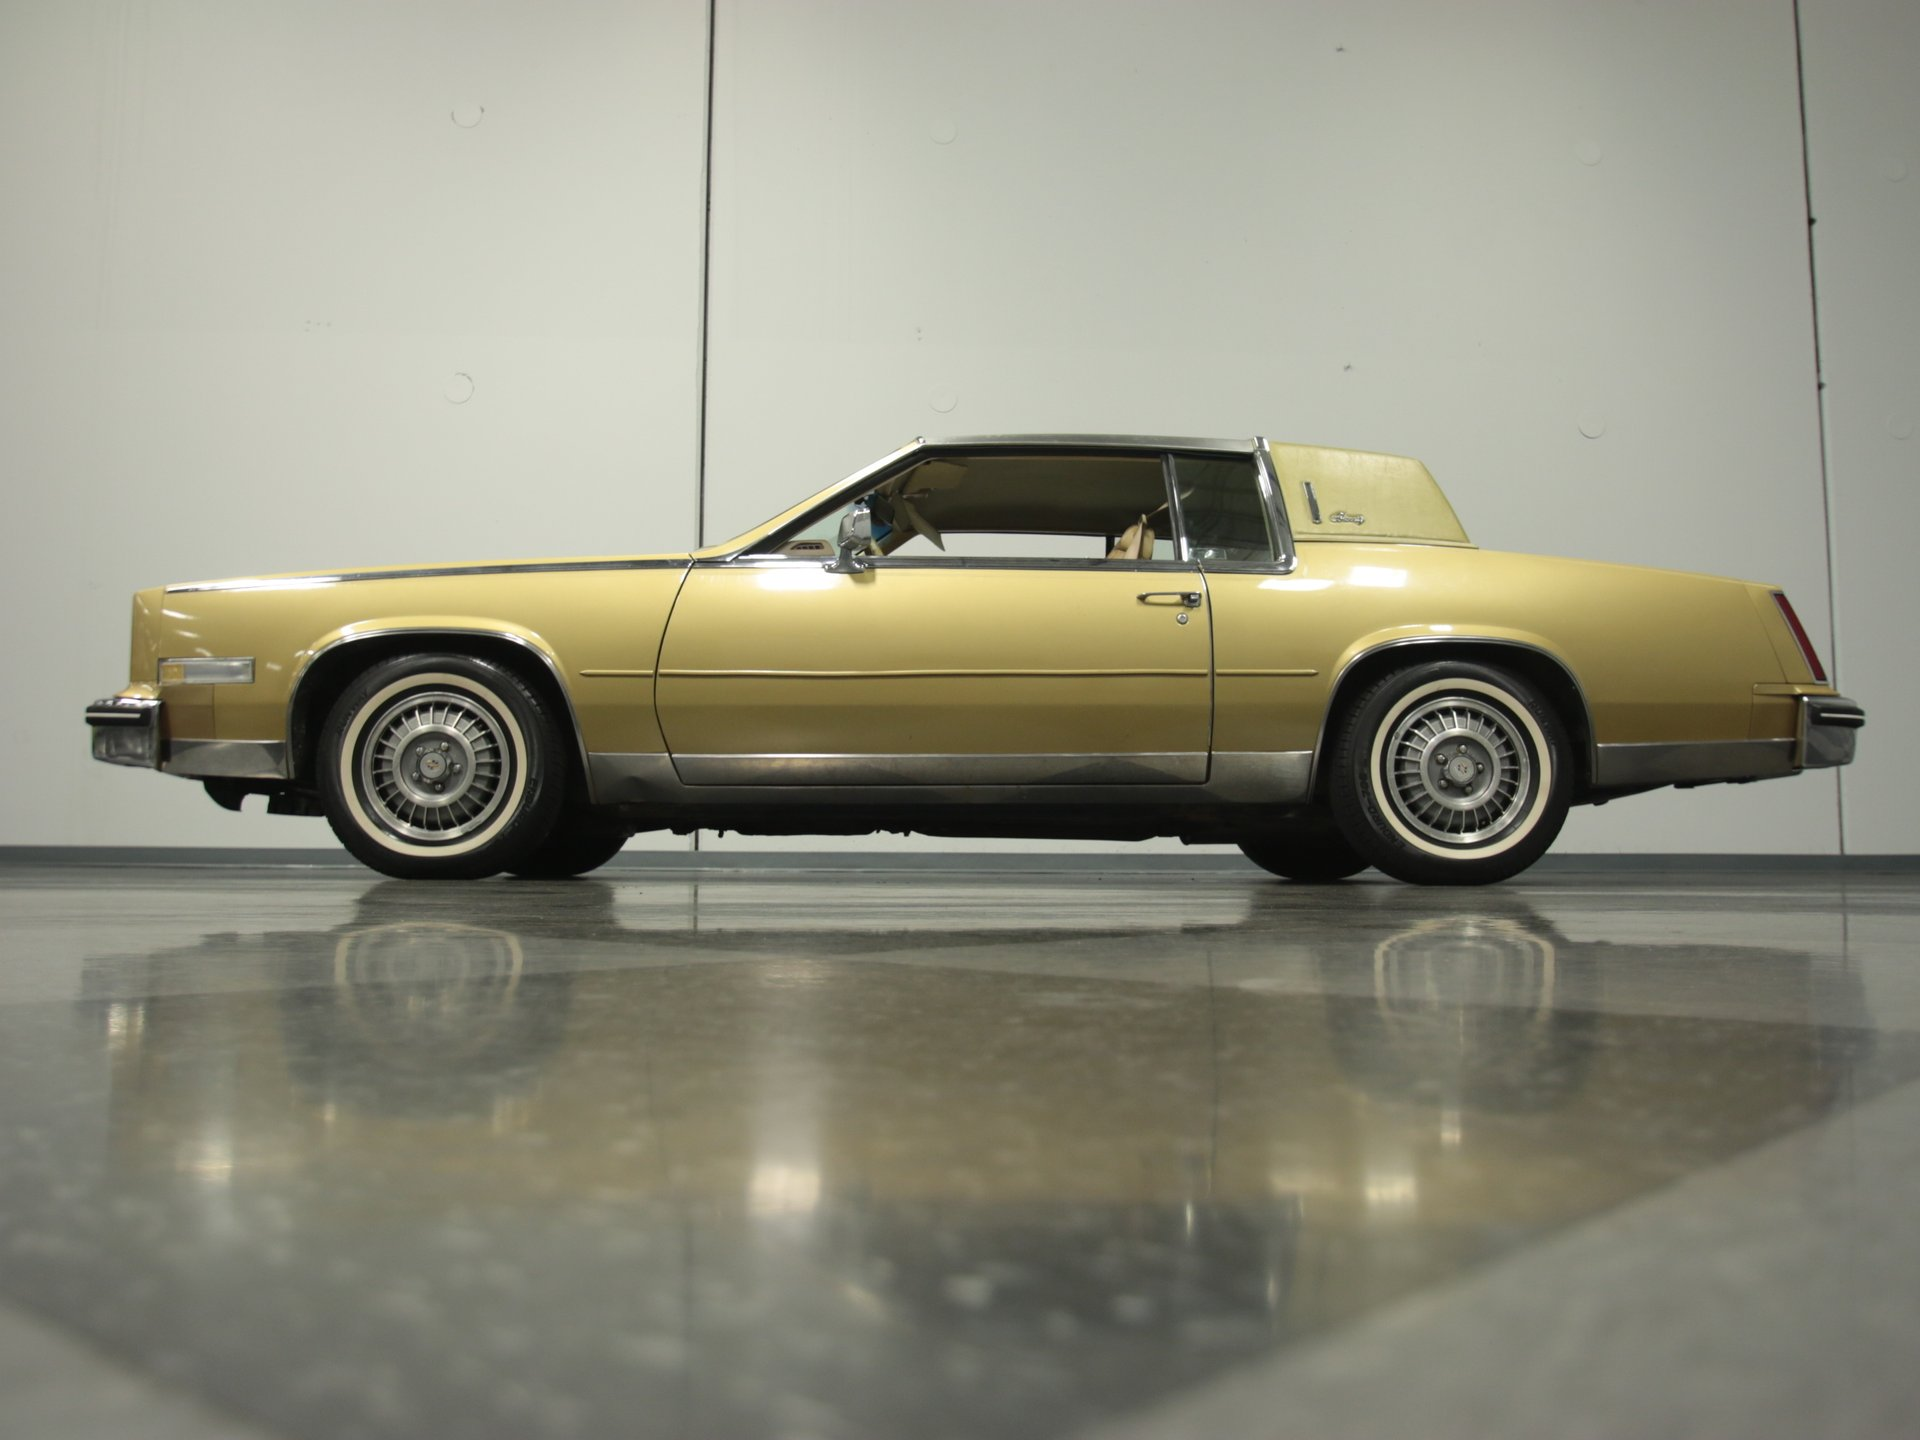 Image result for 1985 Cadillac Eldorado gold